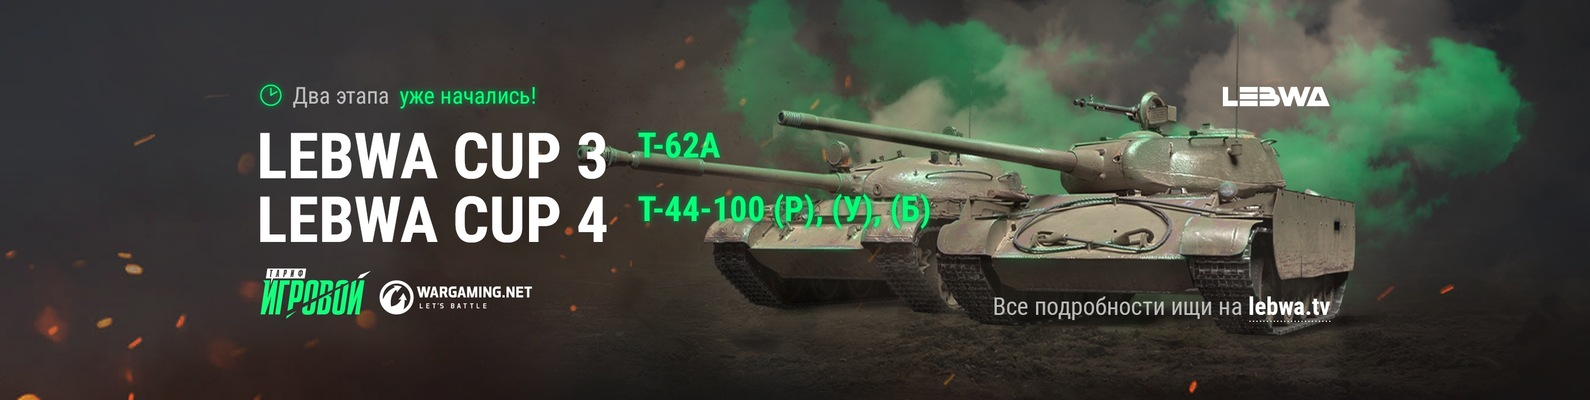 Код wargaming 2 й степени world of tanks